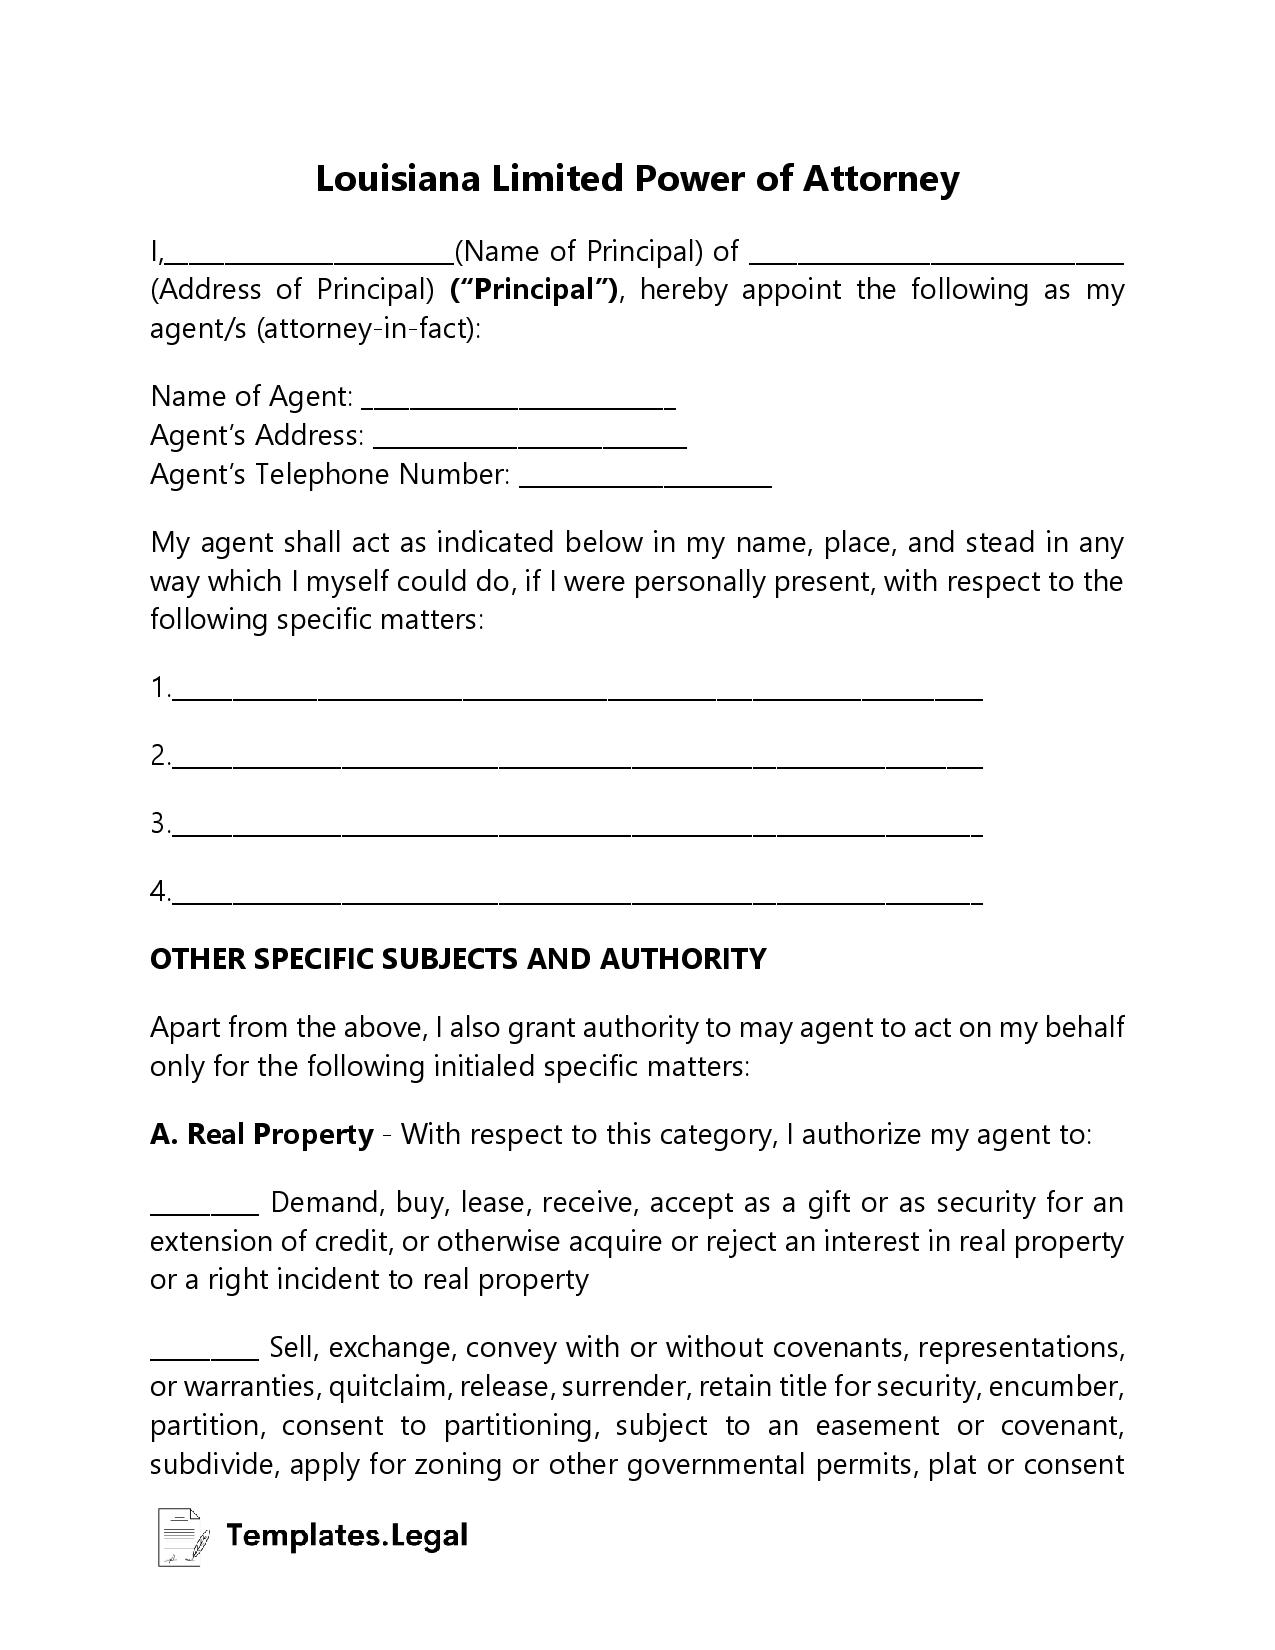 Louisiana Limited Power of Attorney - Templates.Legal